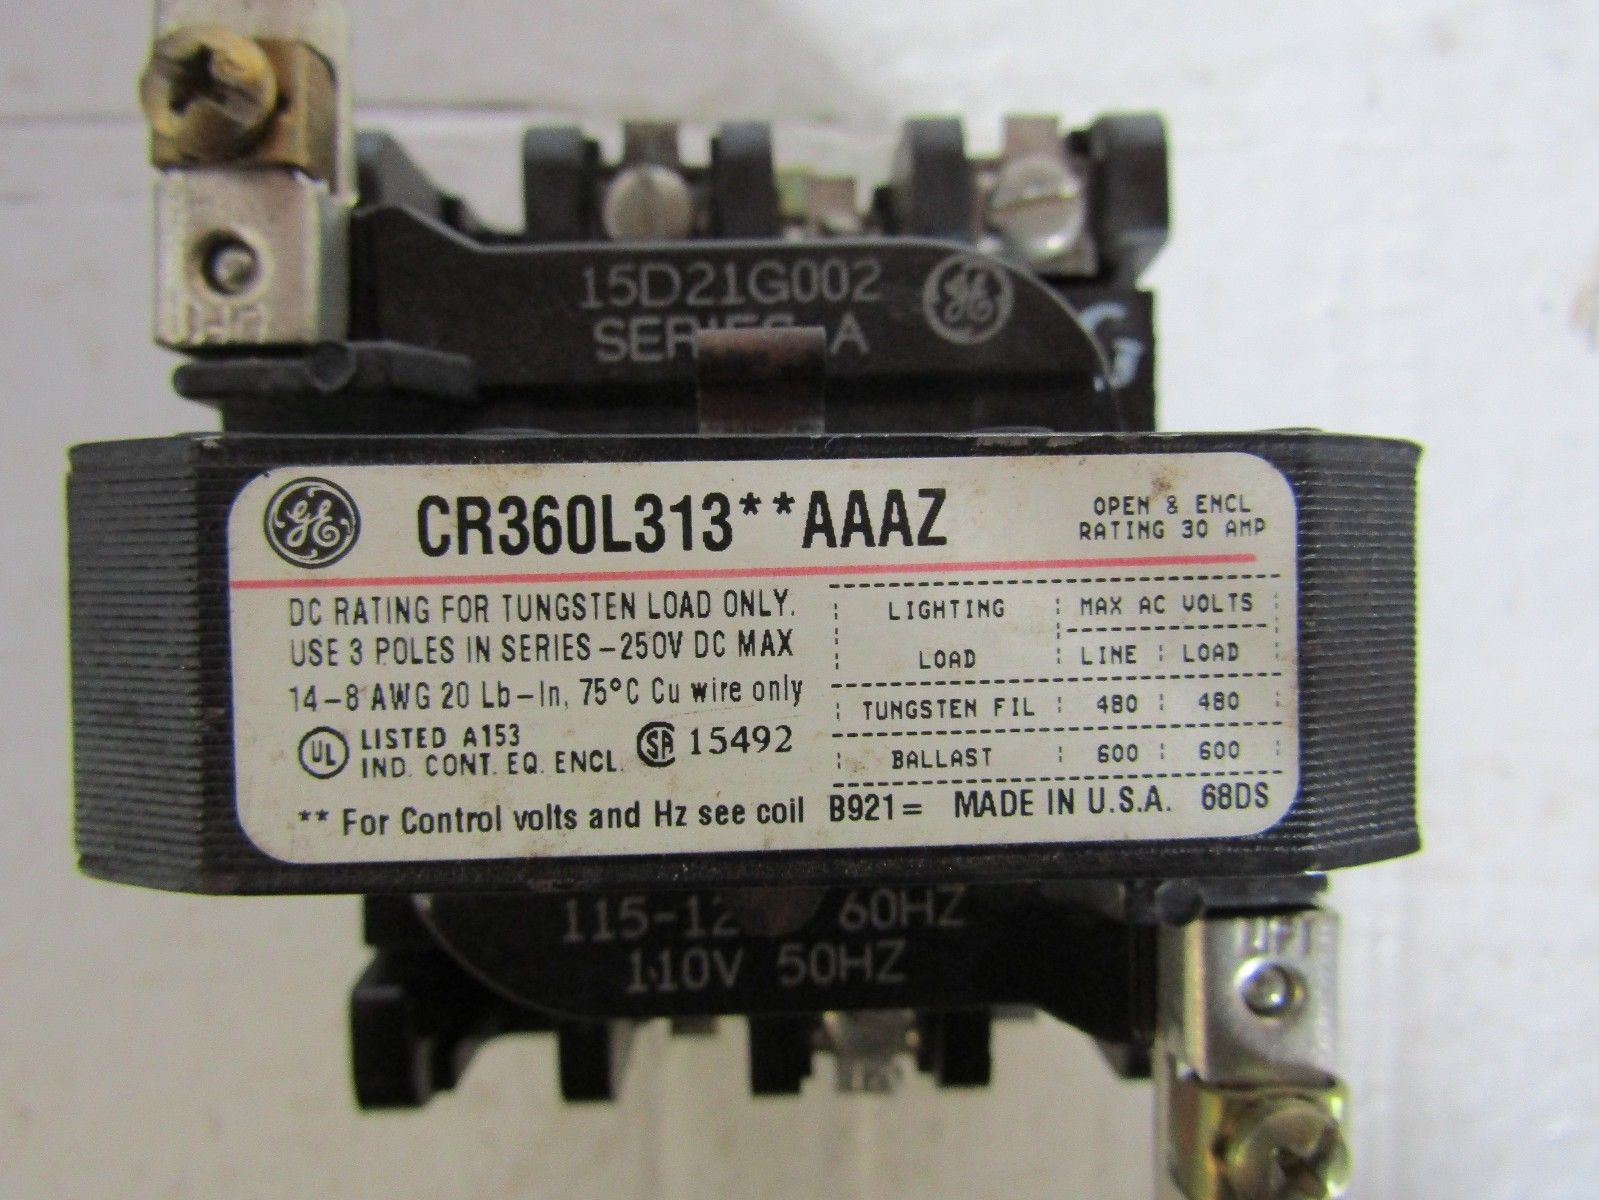 GE CR360L313 3 POLE 30 AMP LIGHTING CONTACTOR 331928791560 4?fit\\\=1599%2C1200\\\&ssl\\\=1 wiring diagram photocell focus industries photocell wiring diagram k4121c wiring diagram at crackthecode.co